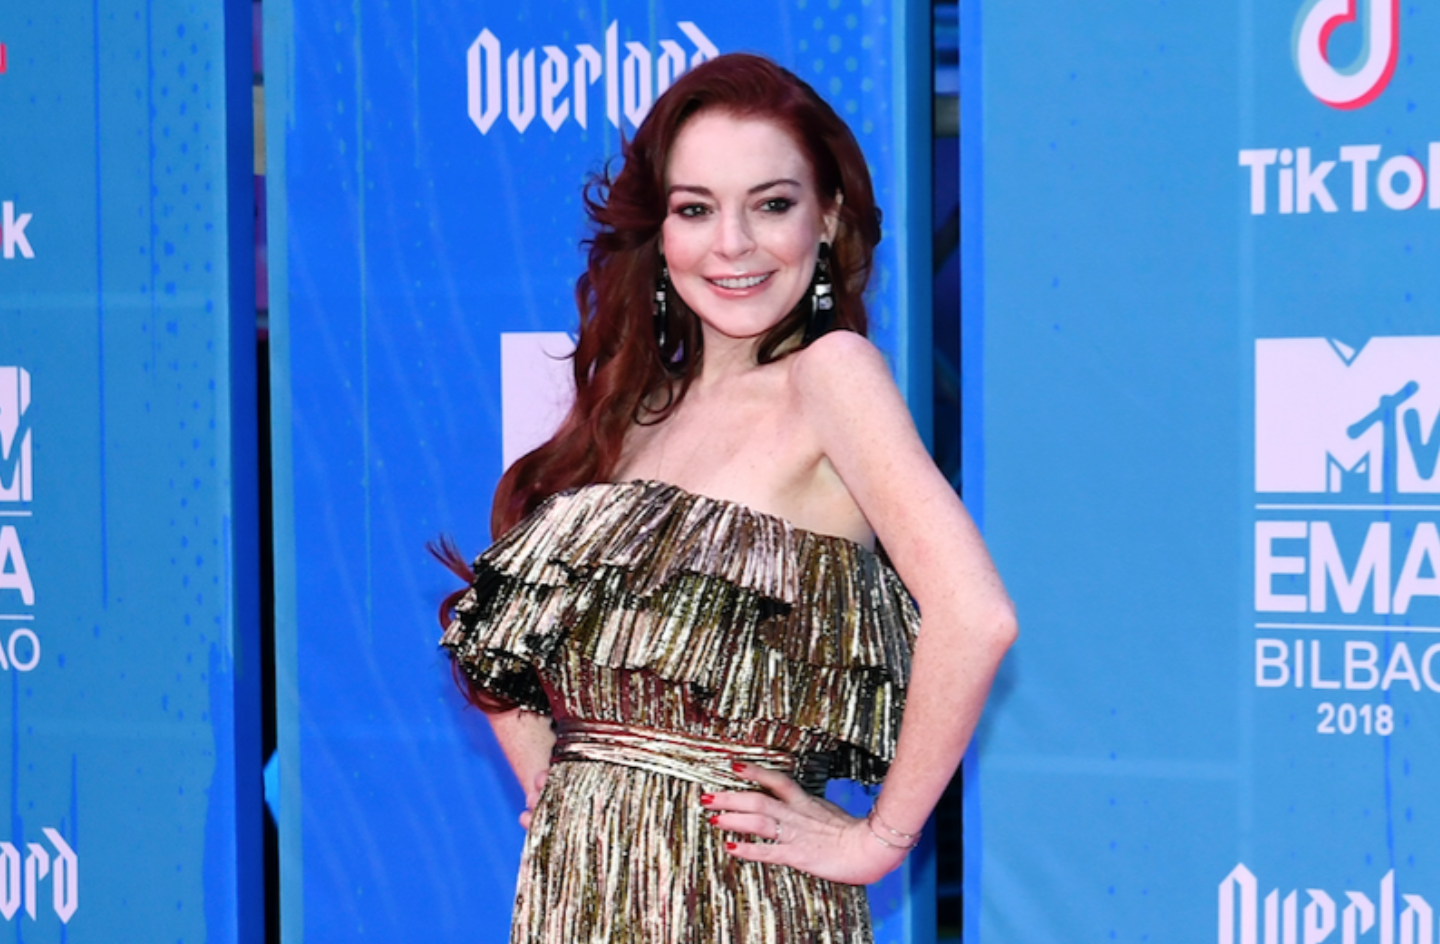 Lindsay Lohan Recalls 'Mistake' in Attempting to Help Refugee Family